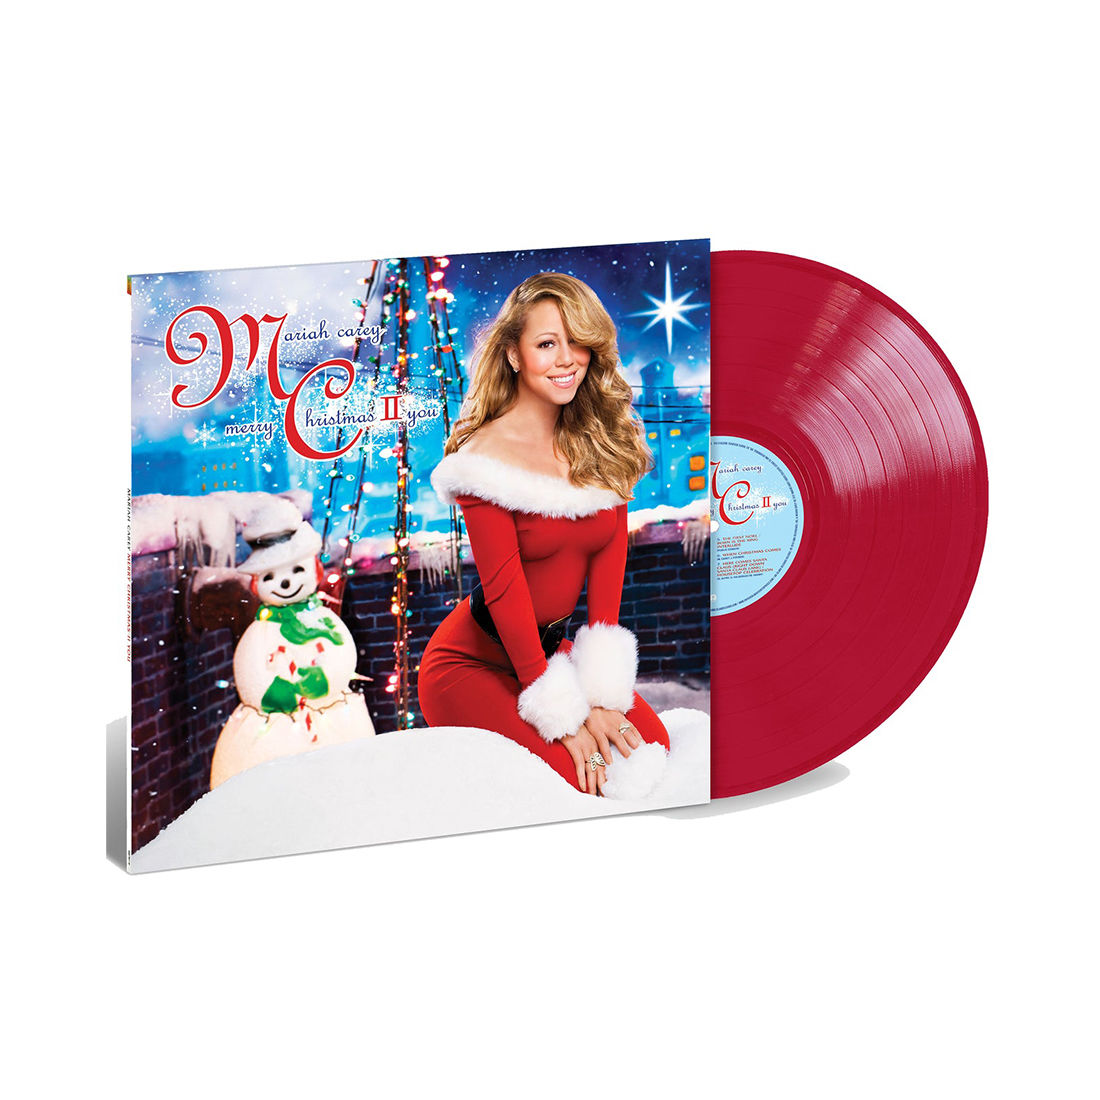 Christmas And New Year Music Sound Bundle 2020 The Sound of Vinyl